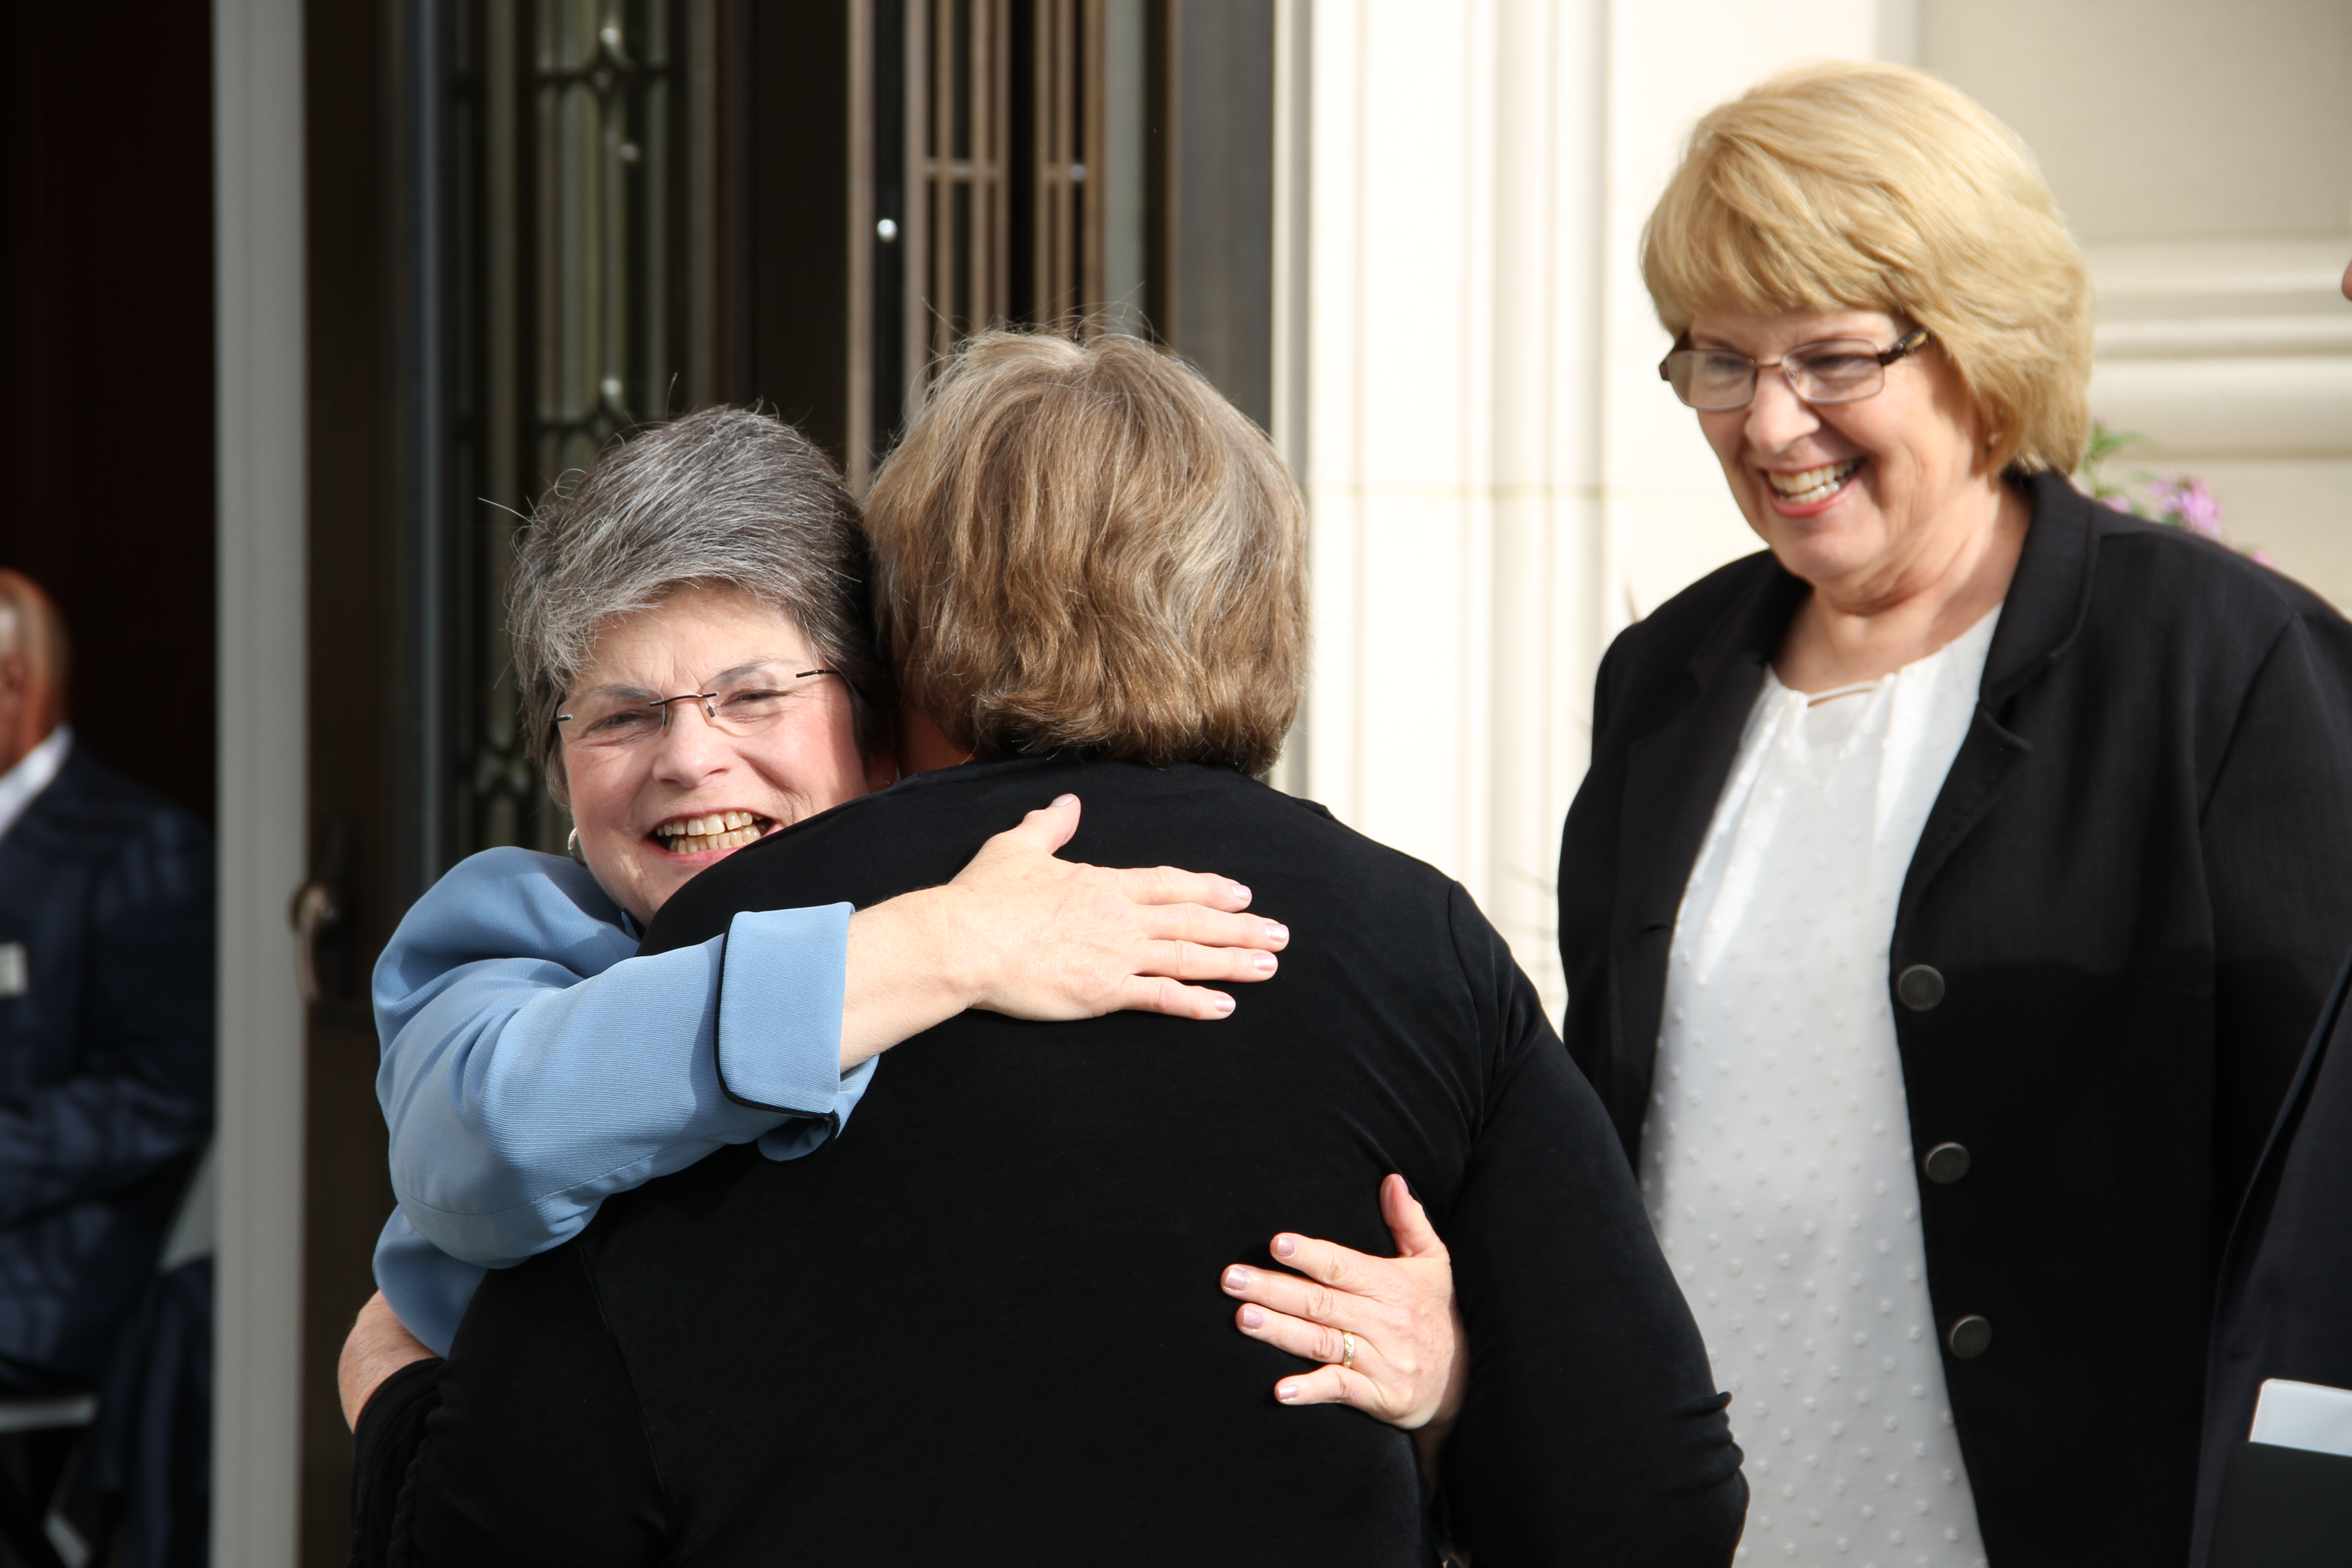 Members from the Memphis Tennessee Temple greet one another outside the temple prior to the rededication on May 5, 2019.